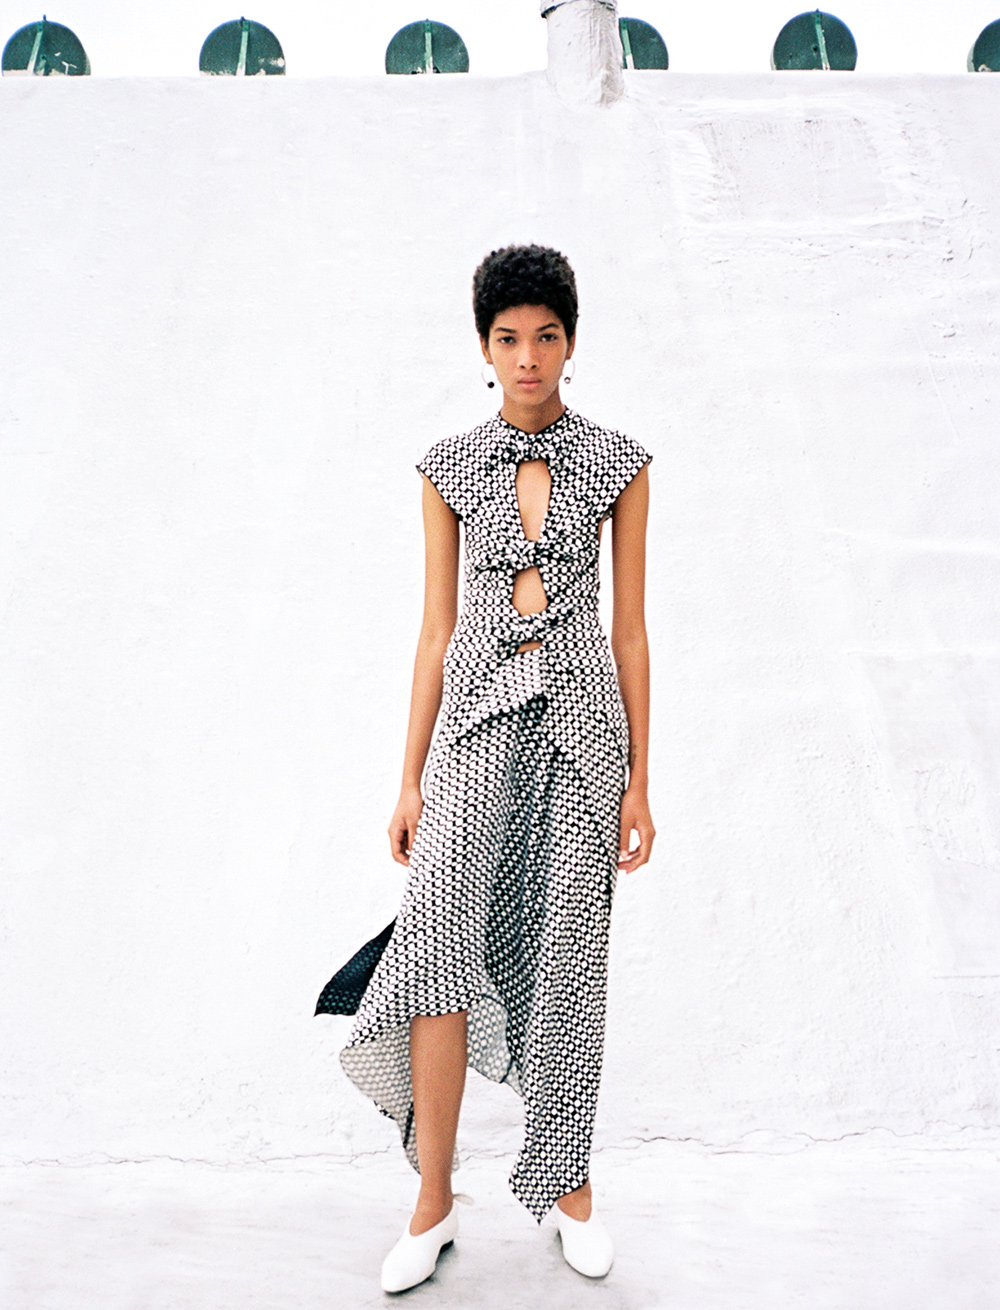 proenza schouler tiered dress lazaro hernandez